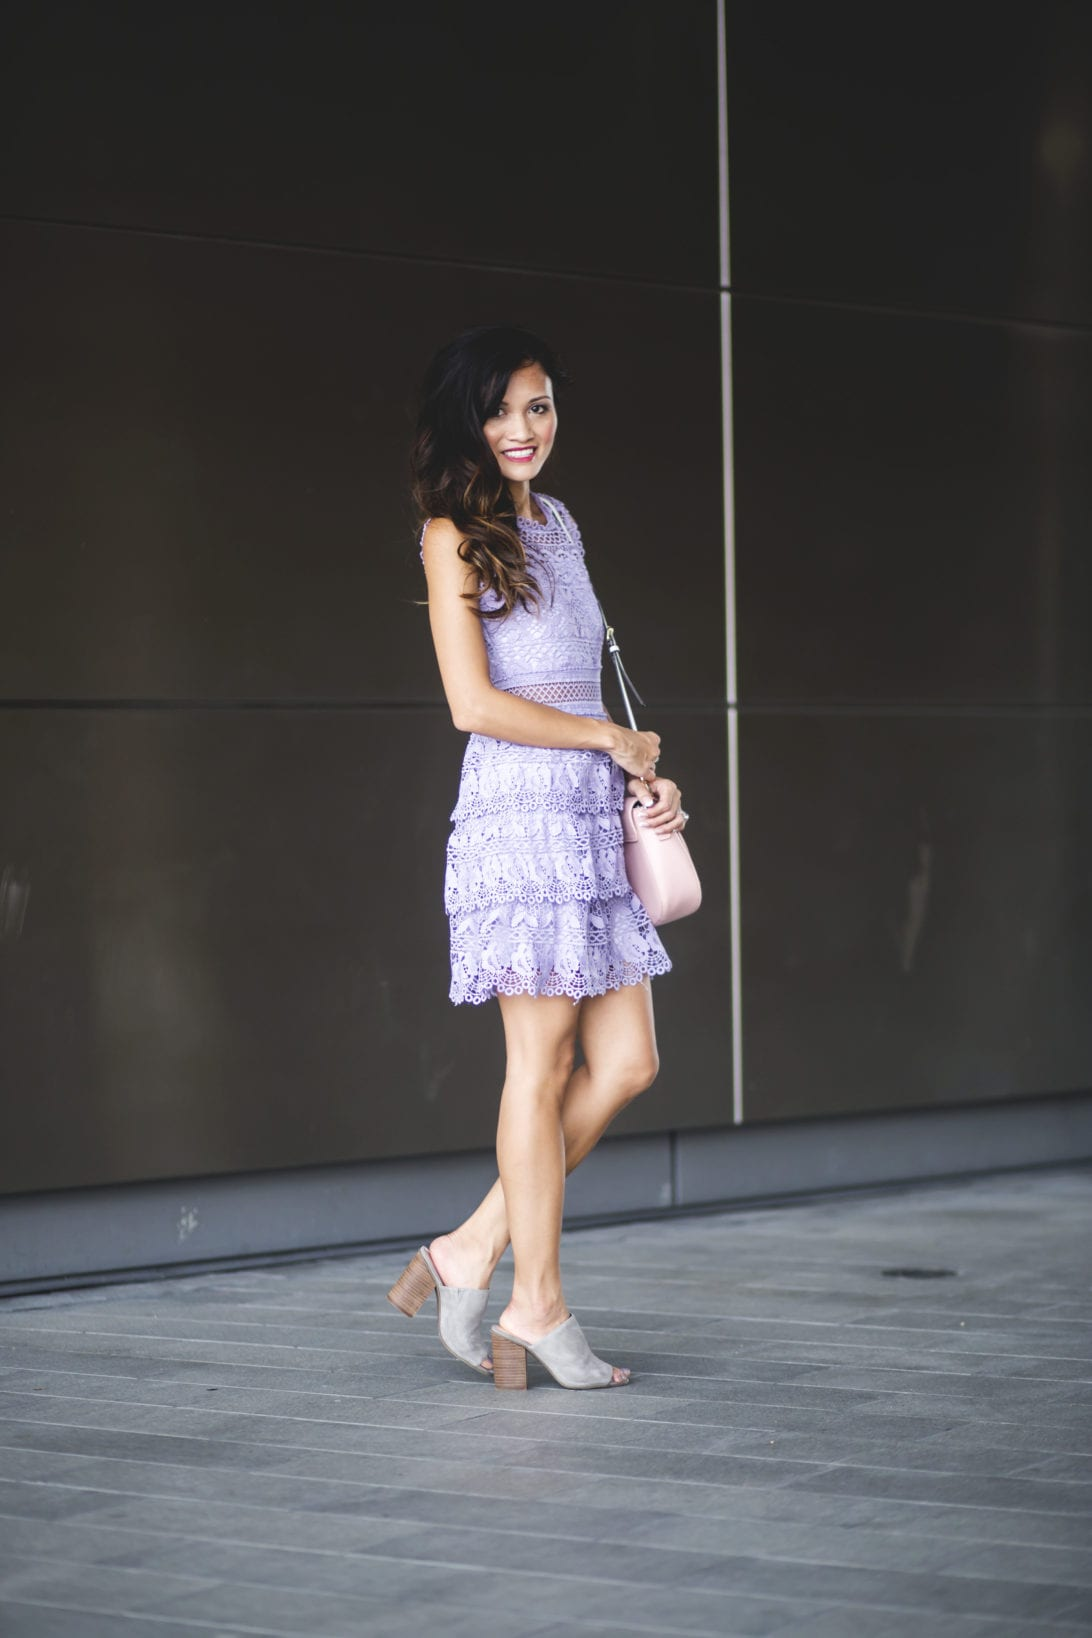 lace dress, purple lace dress Sunday best, what to wear to church, gray mules, pink bag. blazer jacket, layer for fall, pastel dresses, lace dresses